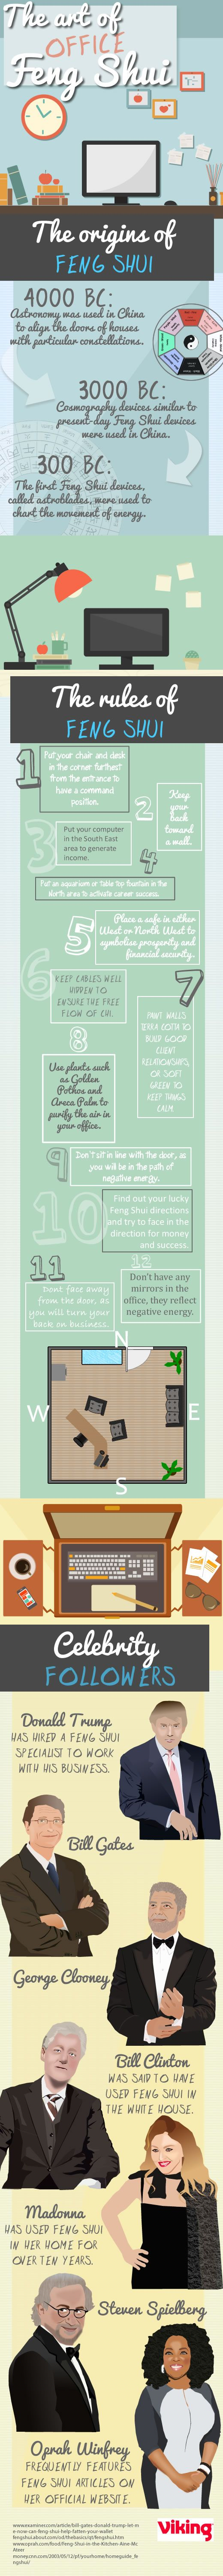 The Art of Feng Shui in the Office - practitioners believe it can improve success and prosperity.